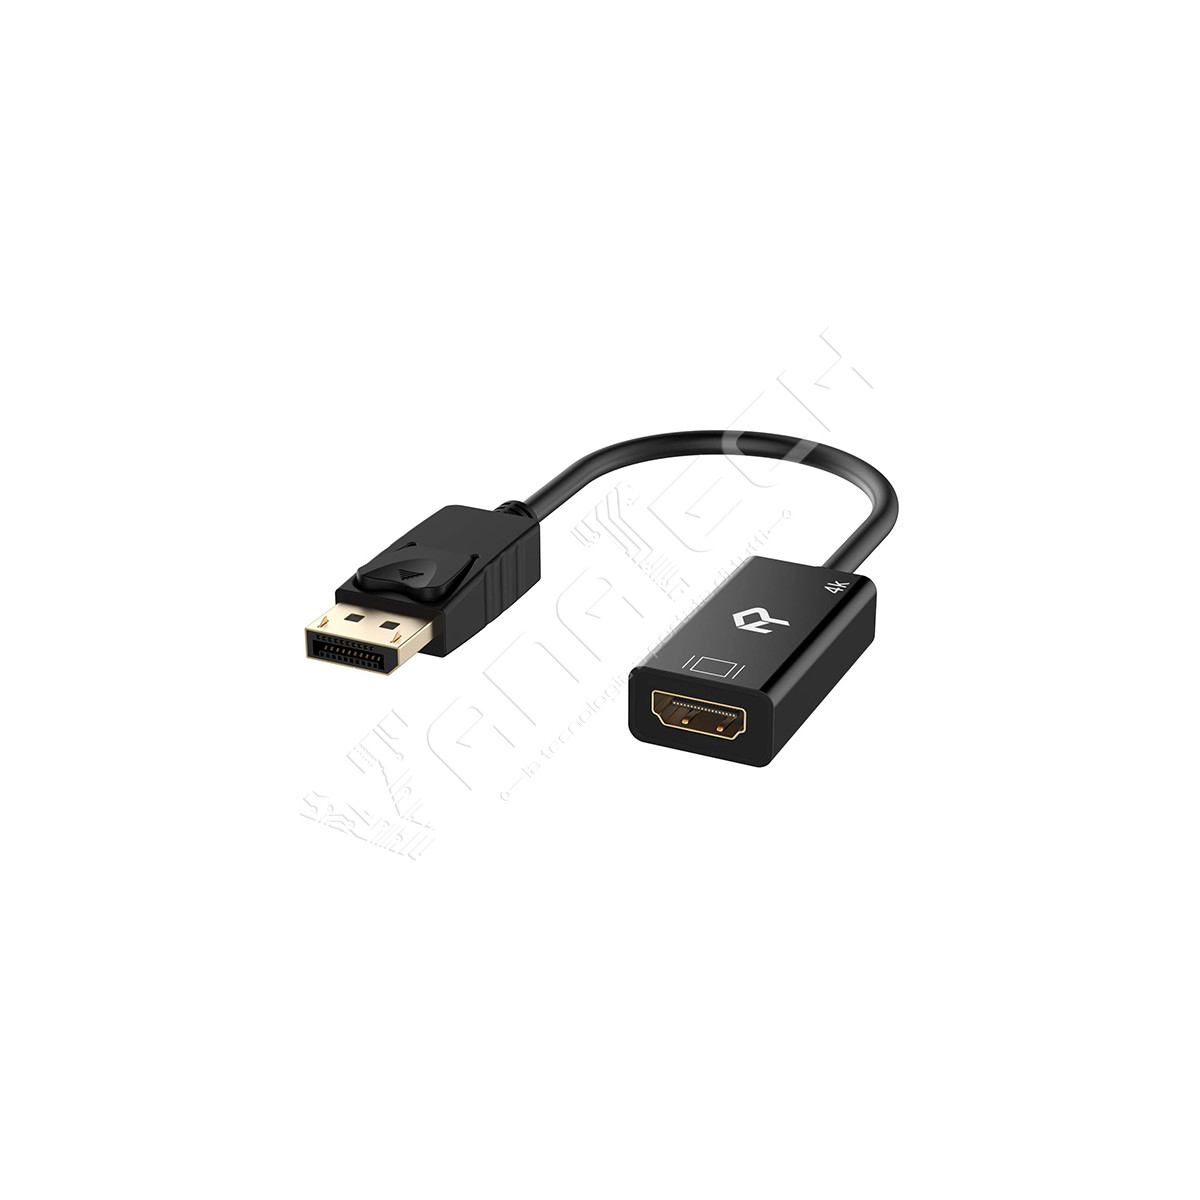 MEMORIA NAND FLASH U0604 IPHONE 6 6 PLUS 32GB